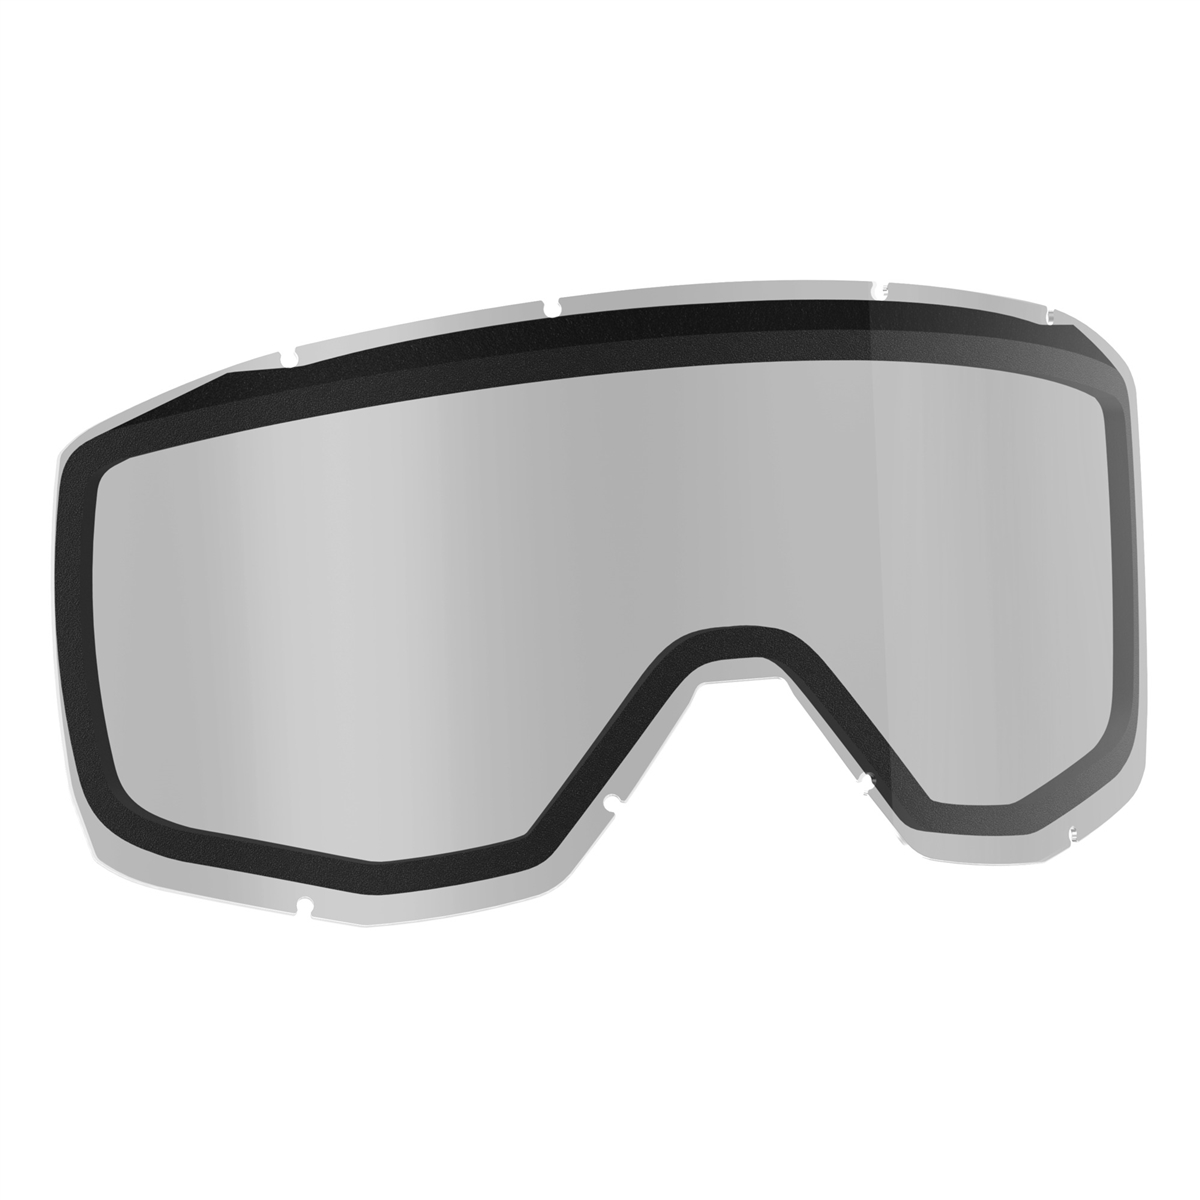 Replacement double lens for HUSTLE/SPLIT OTG/TYRANT goggles - Clear smb